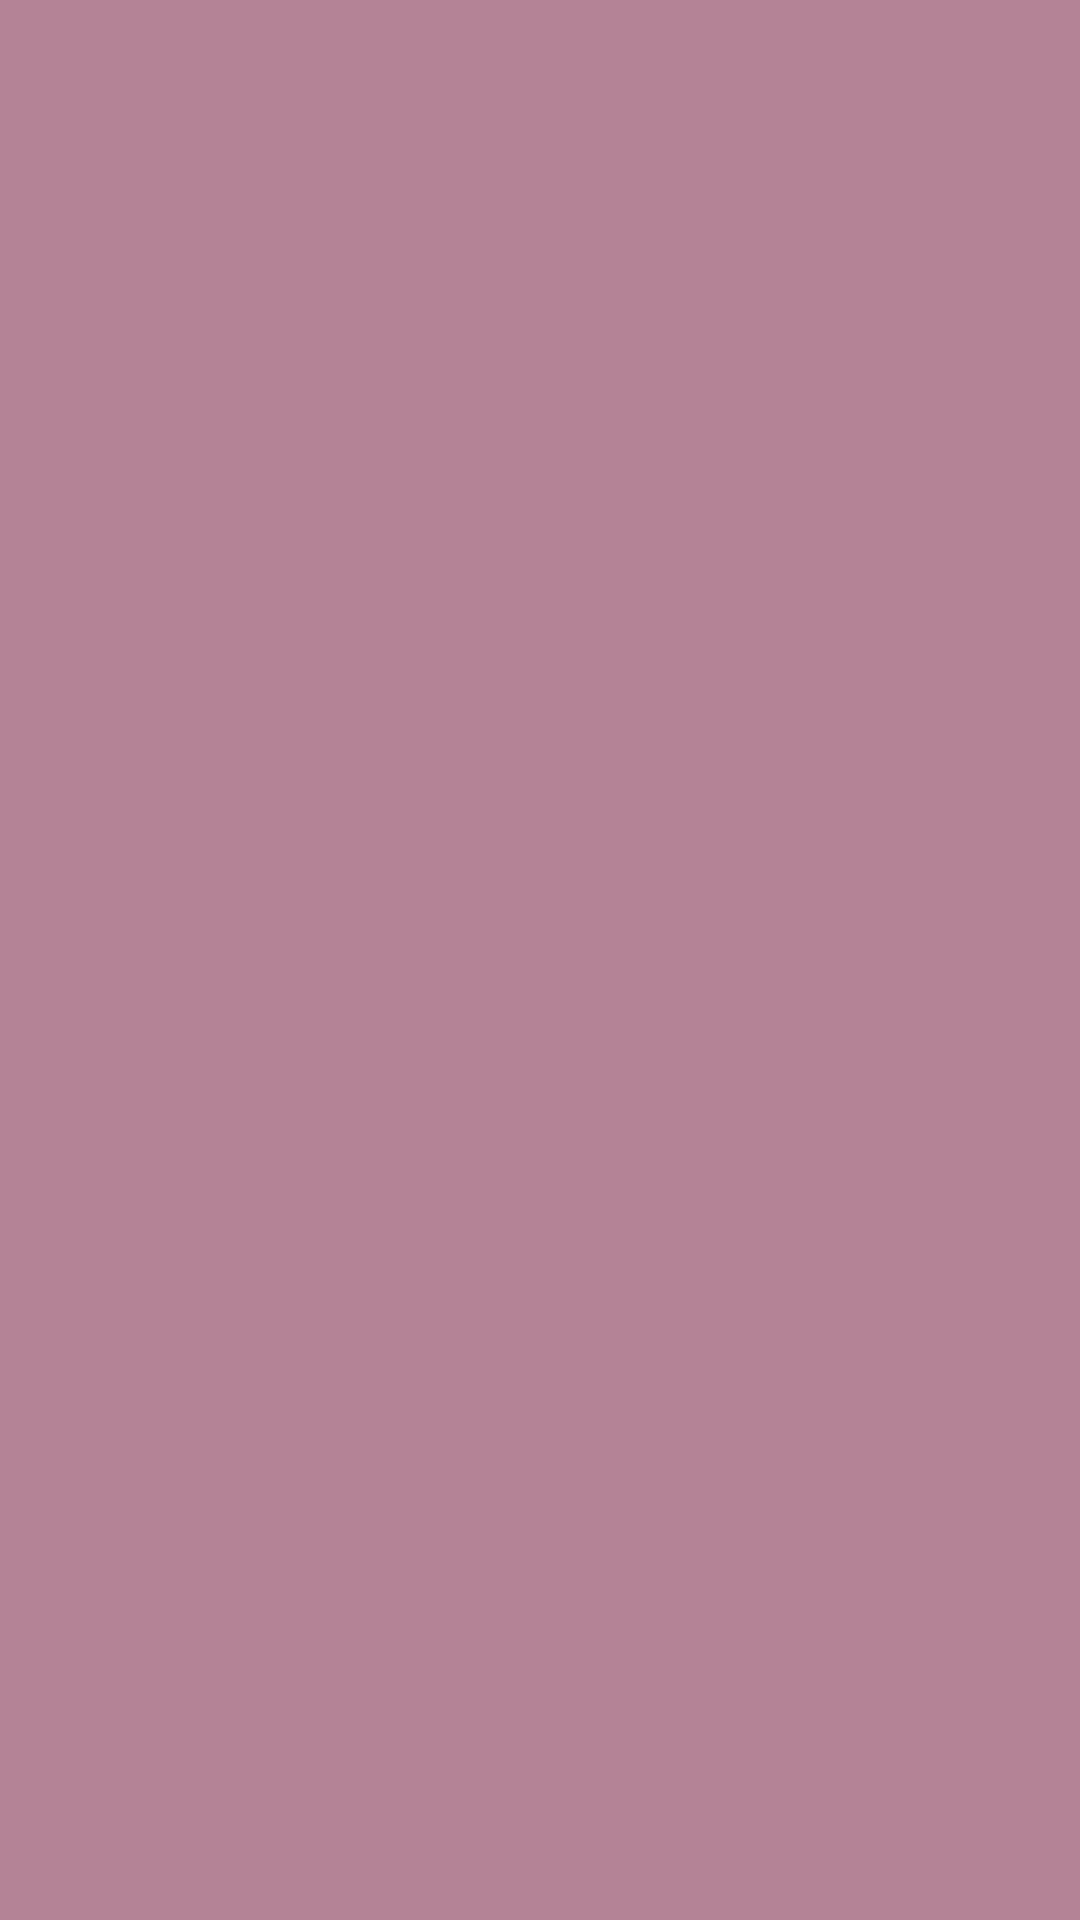 1080x1920 English Lavender Solid Color Background